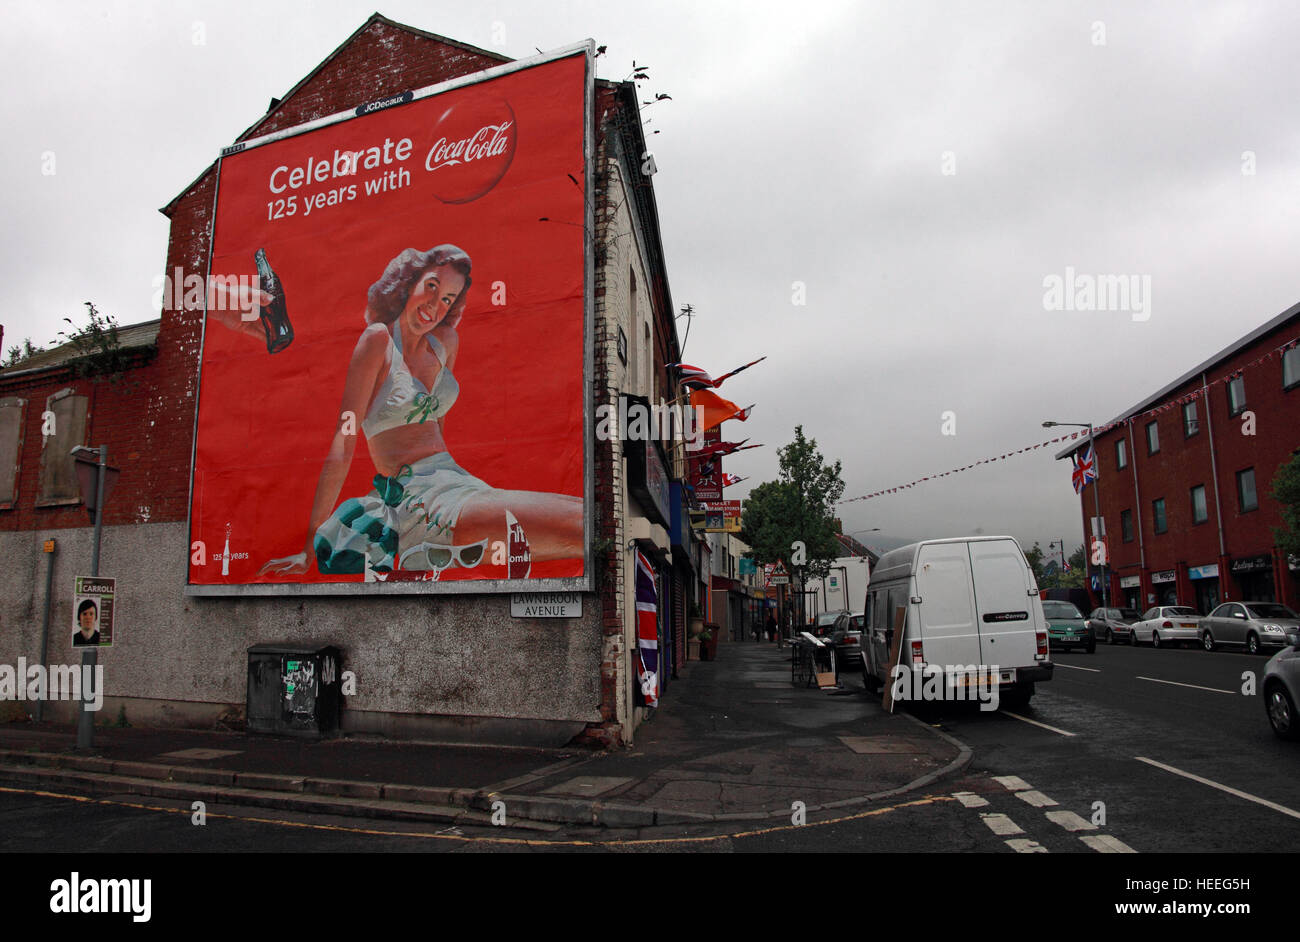 Belfast Unionist, Loyalist Murals and Coca-Cola 125 years Lawnbrook Avenue - Stock Image